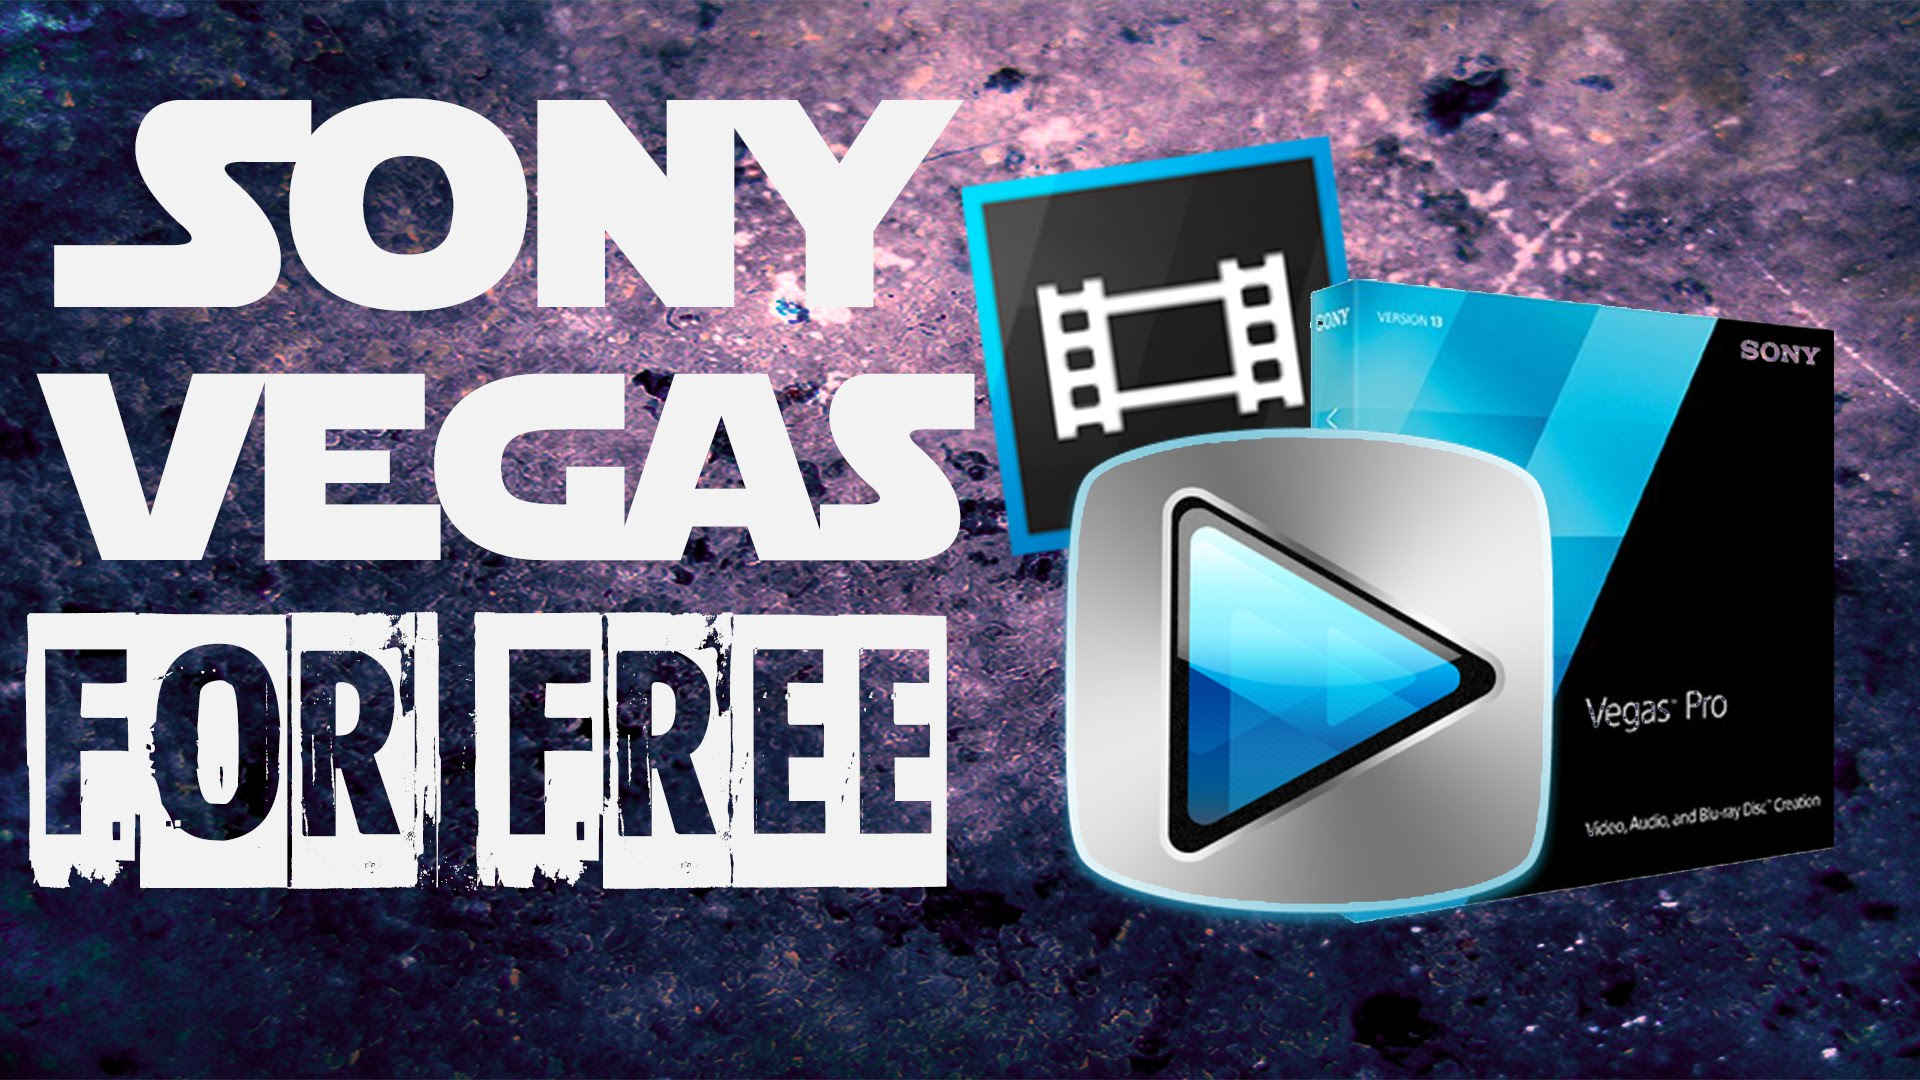 https://apprequirement.blogspot.com/2015/04/download-sony-vegas-pro-13-system.html